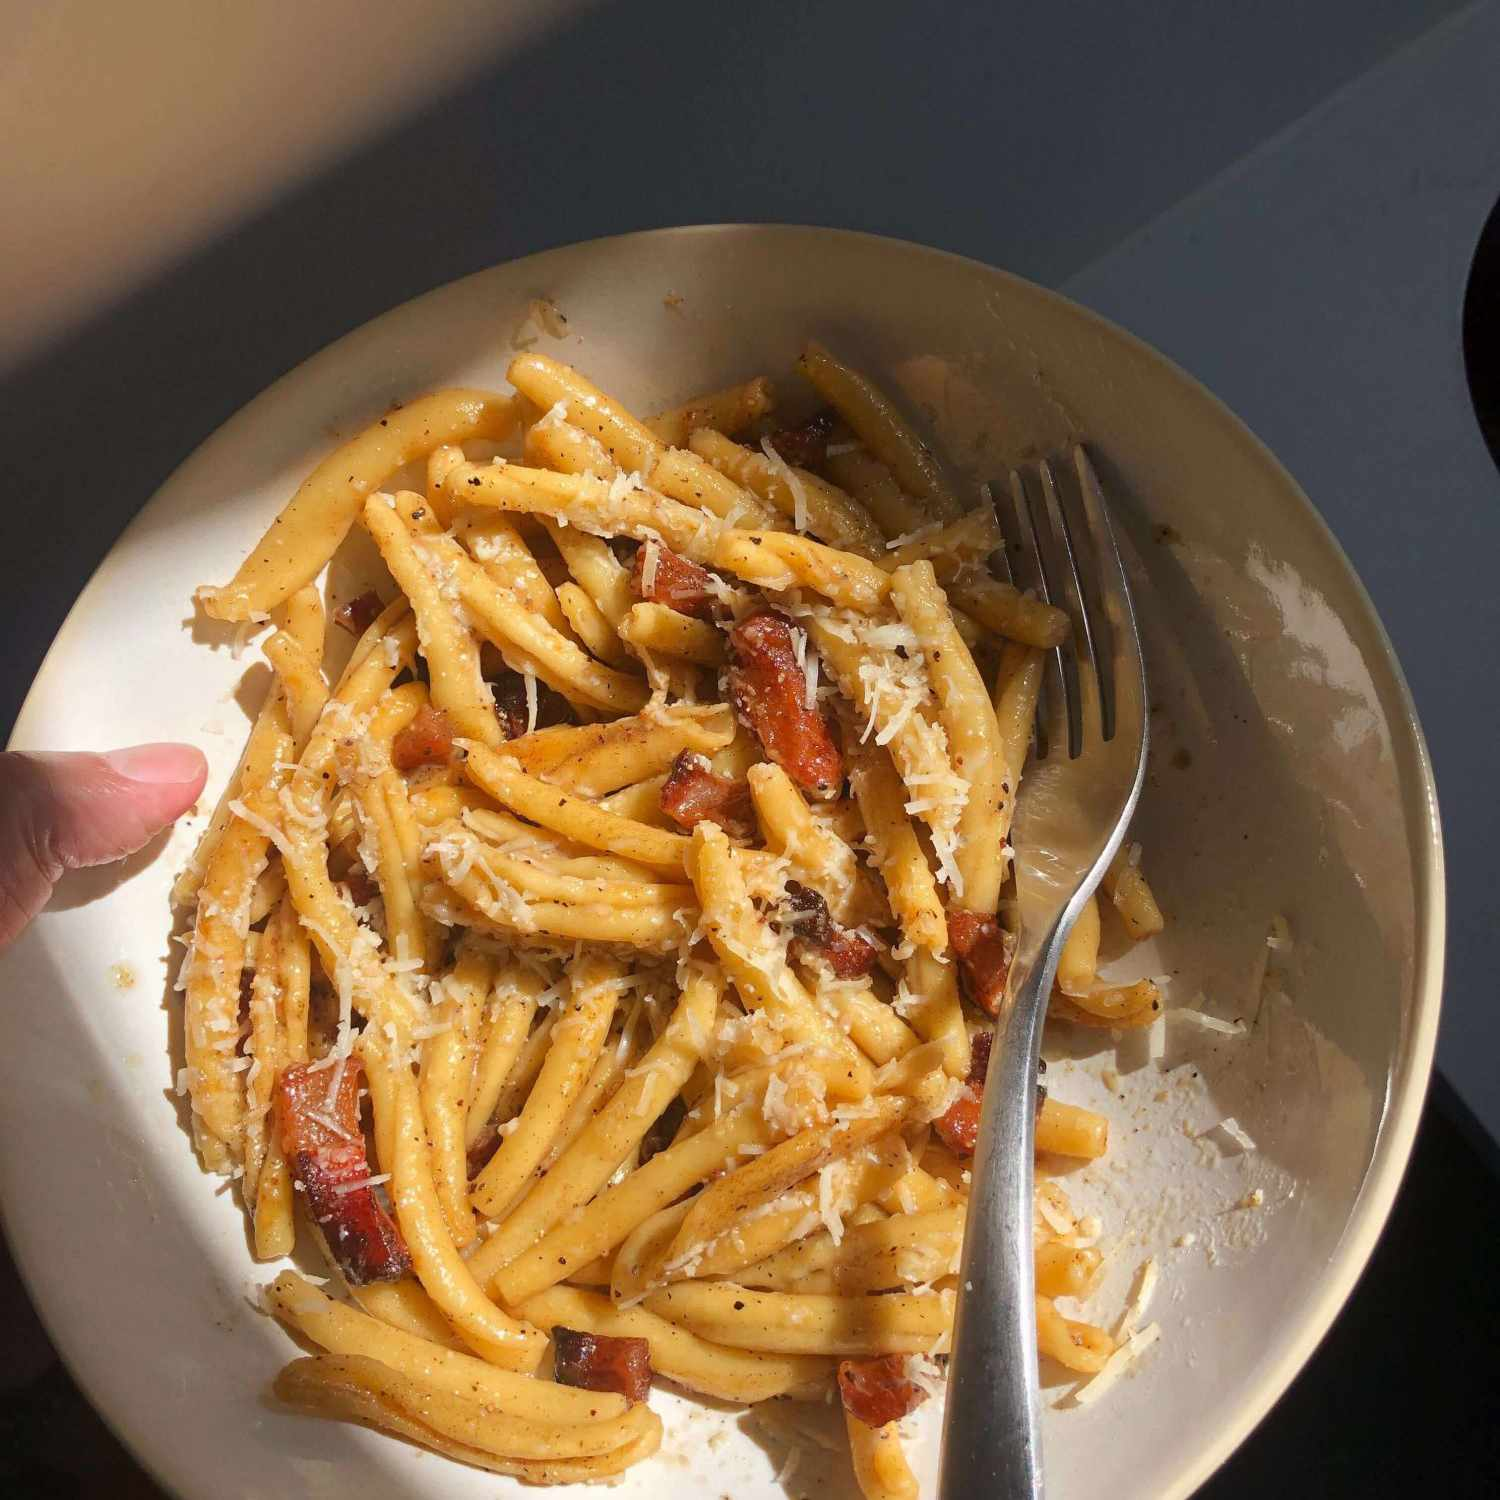 Joel's pasta alla gricia and weird thumb in a bowl